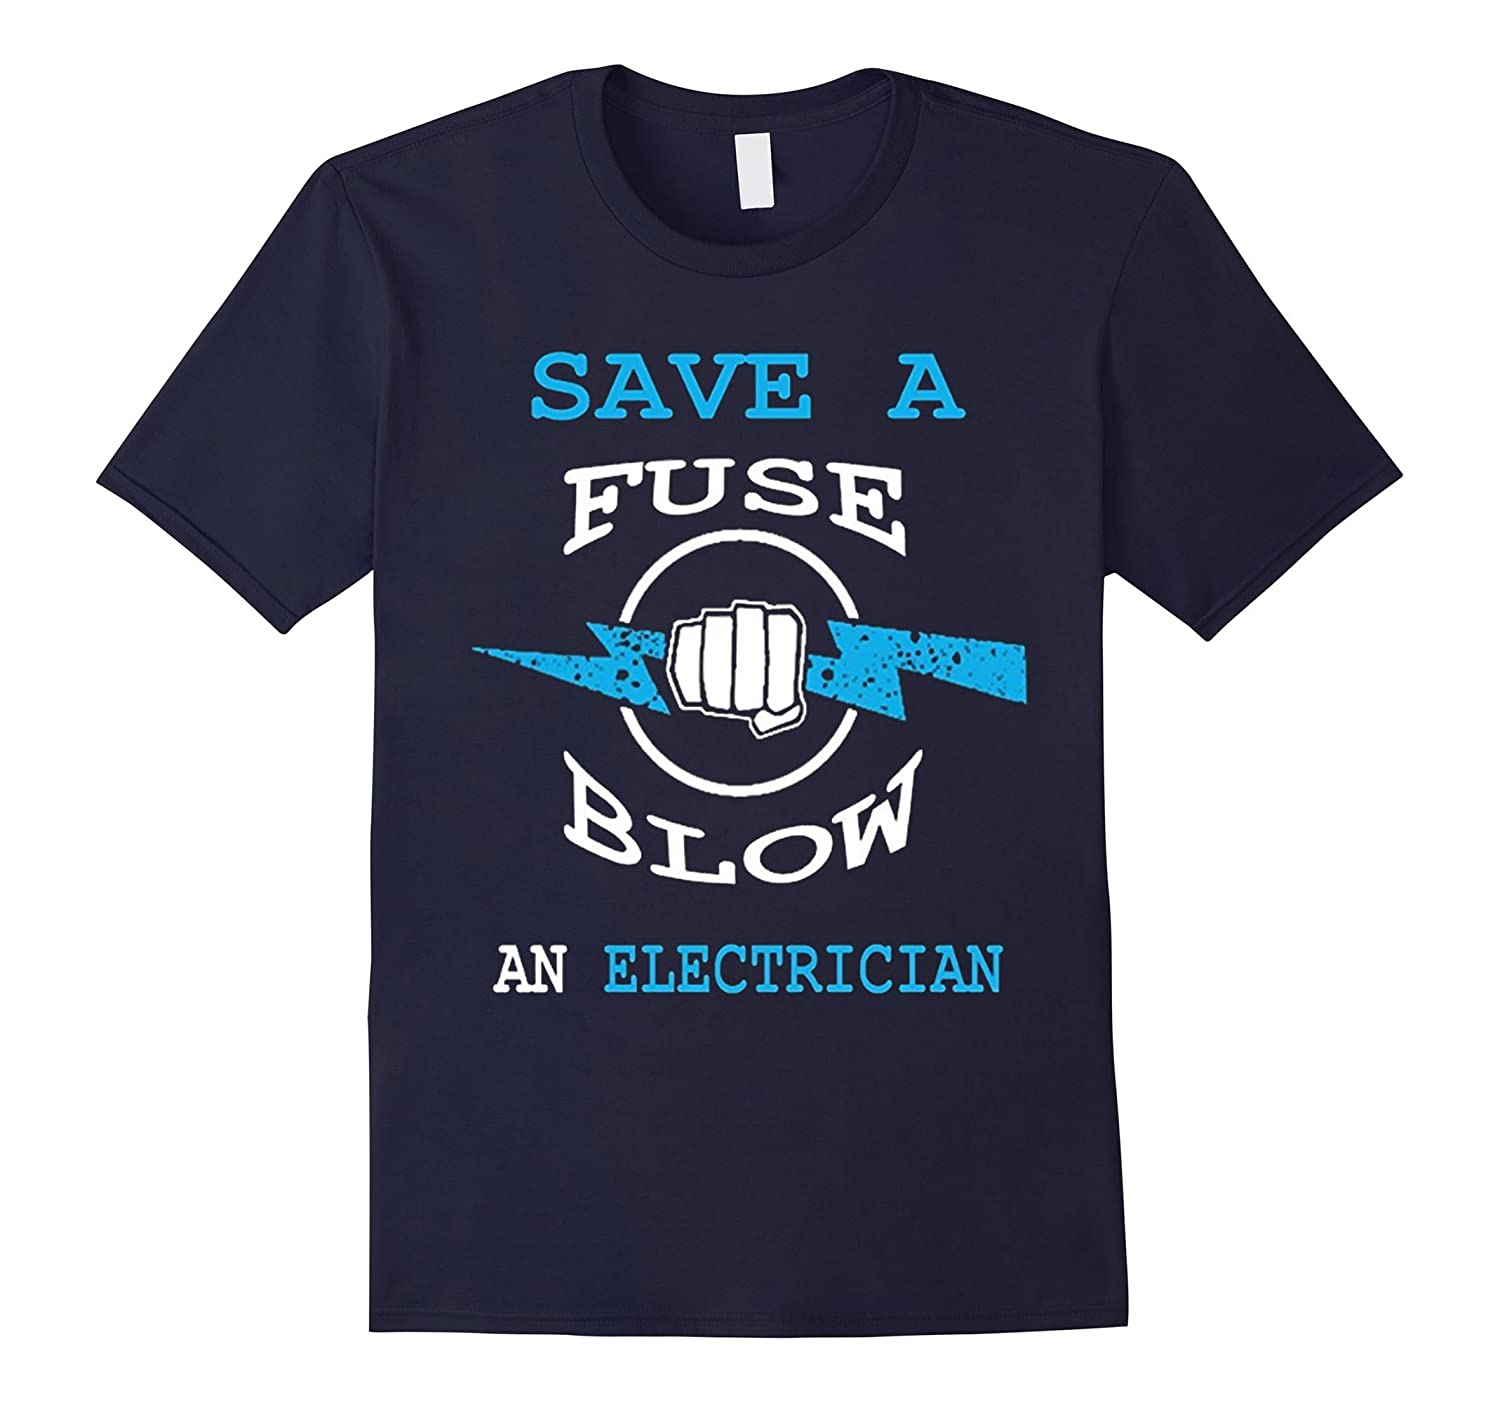 Save A Fuse Blow An Electrician Funny Tshirt-TD